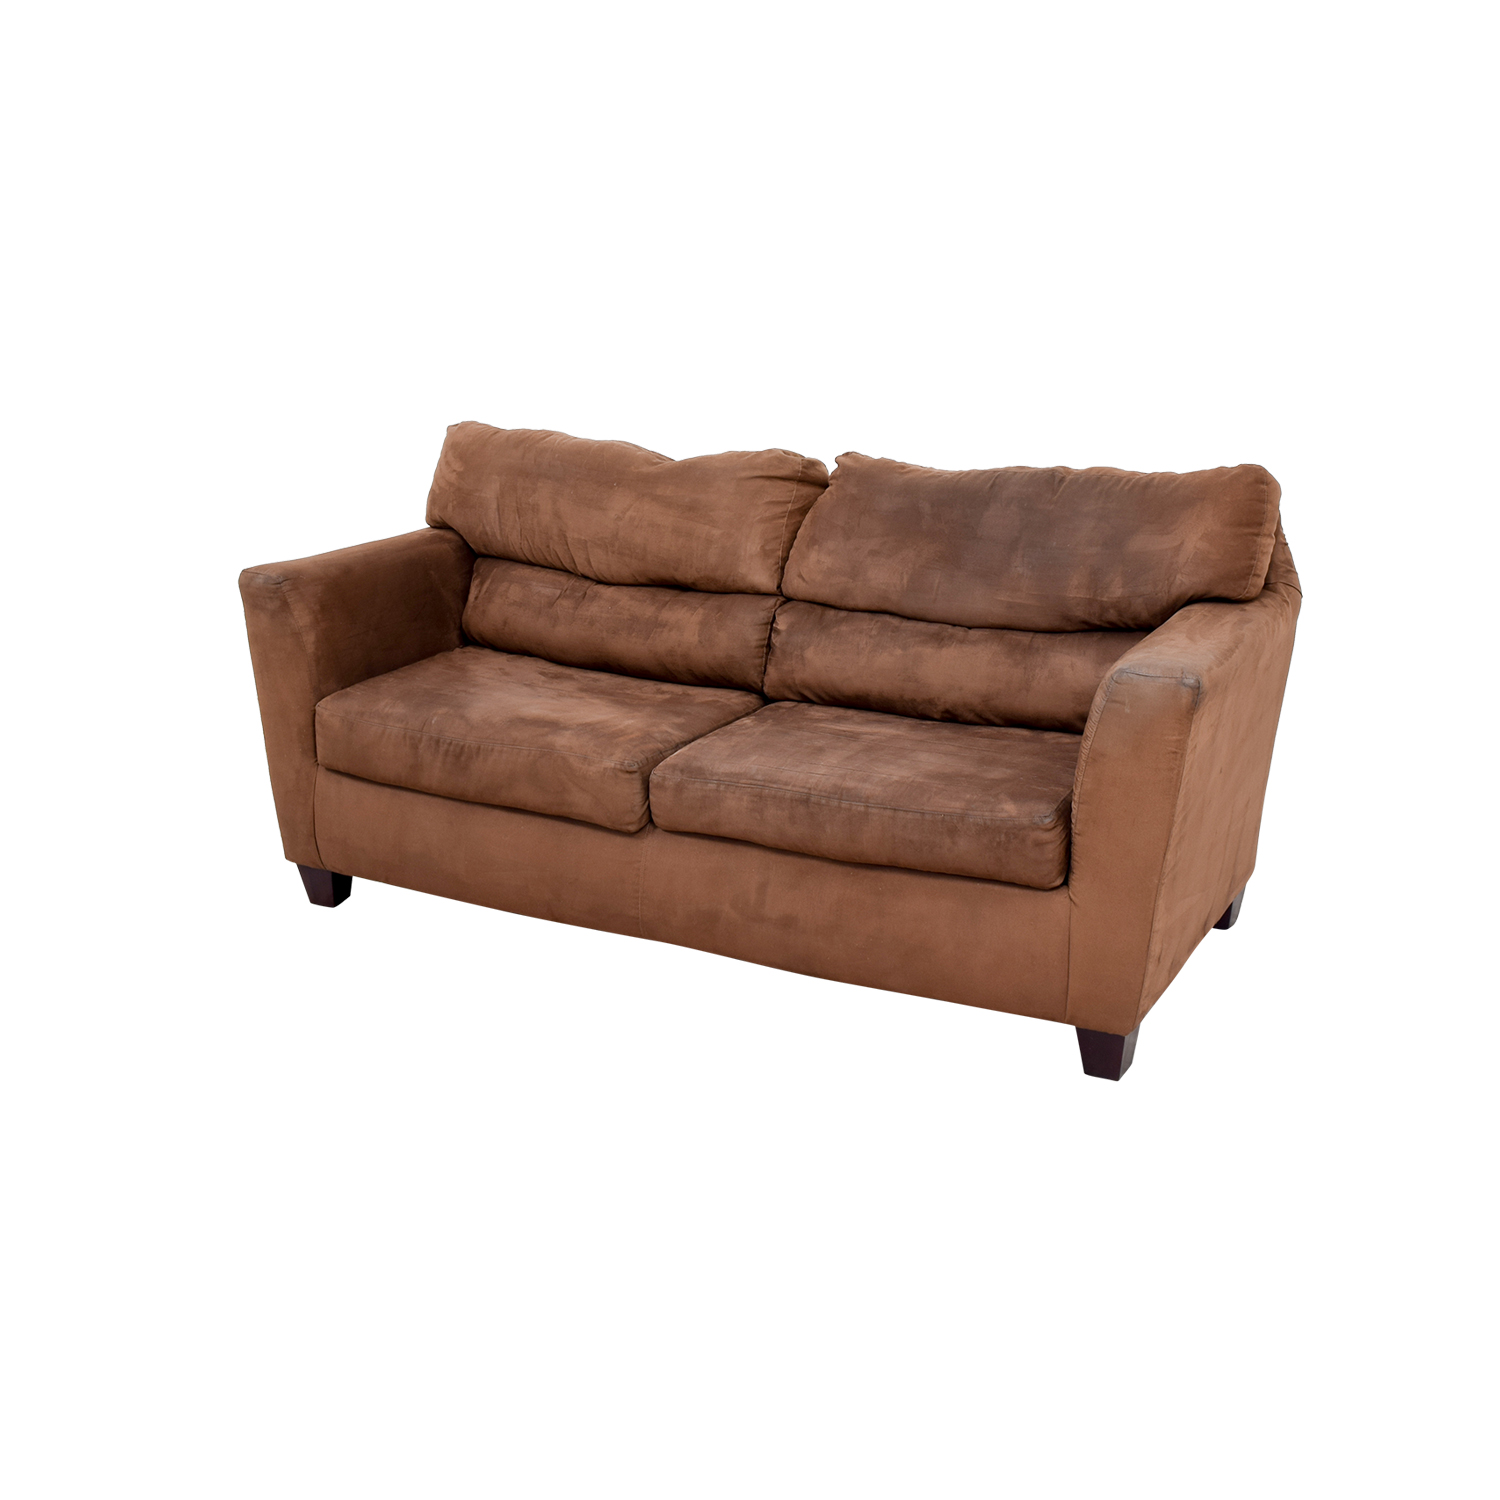 pictures of sofas modernos baratos online 90 off bob 39s furniture brown two